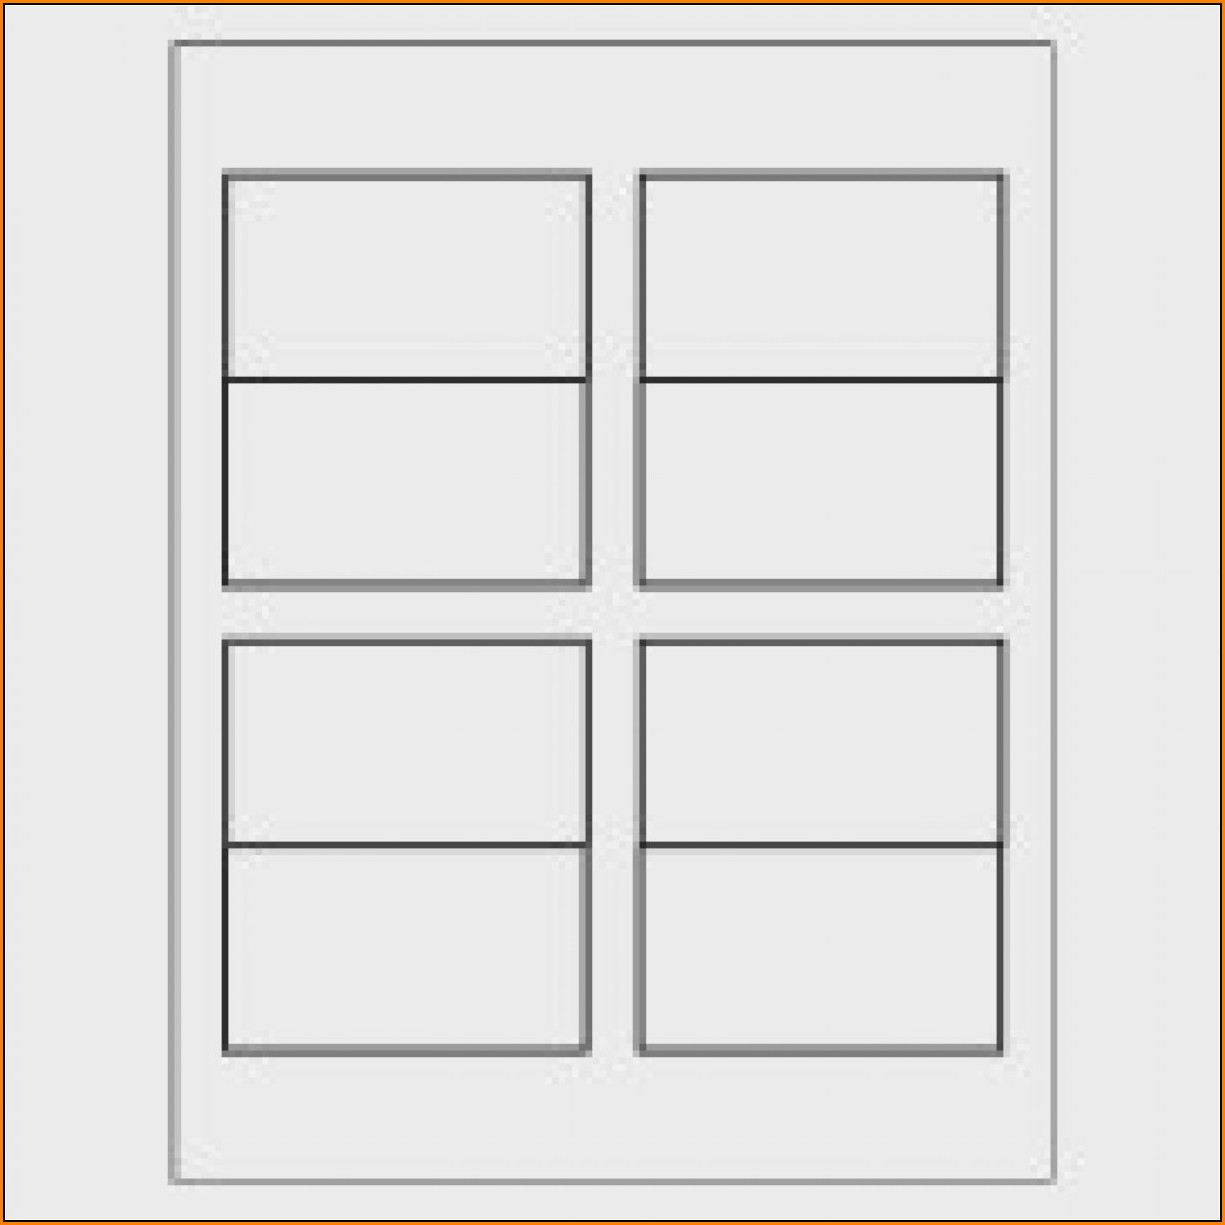 Avery Tent Card Template Word